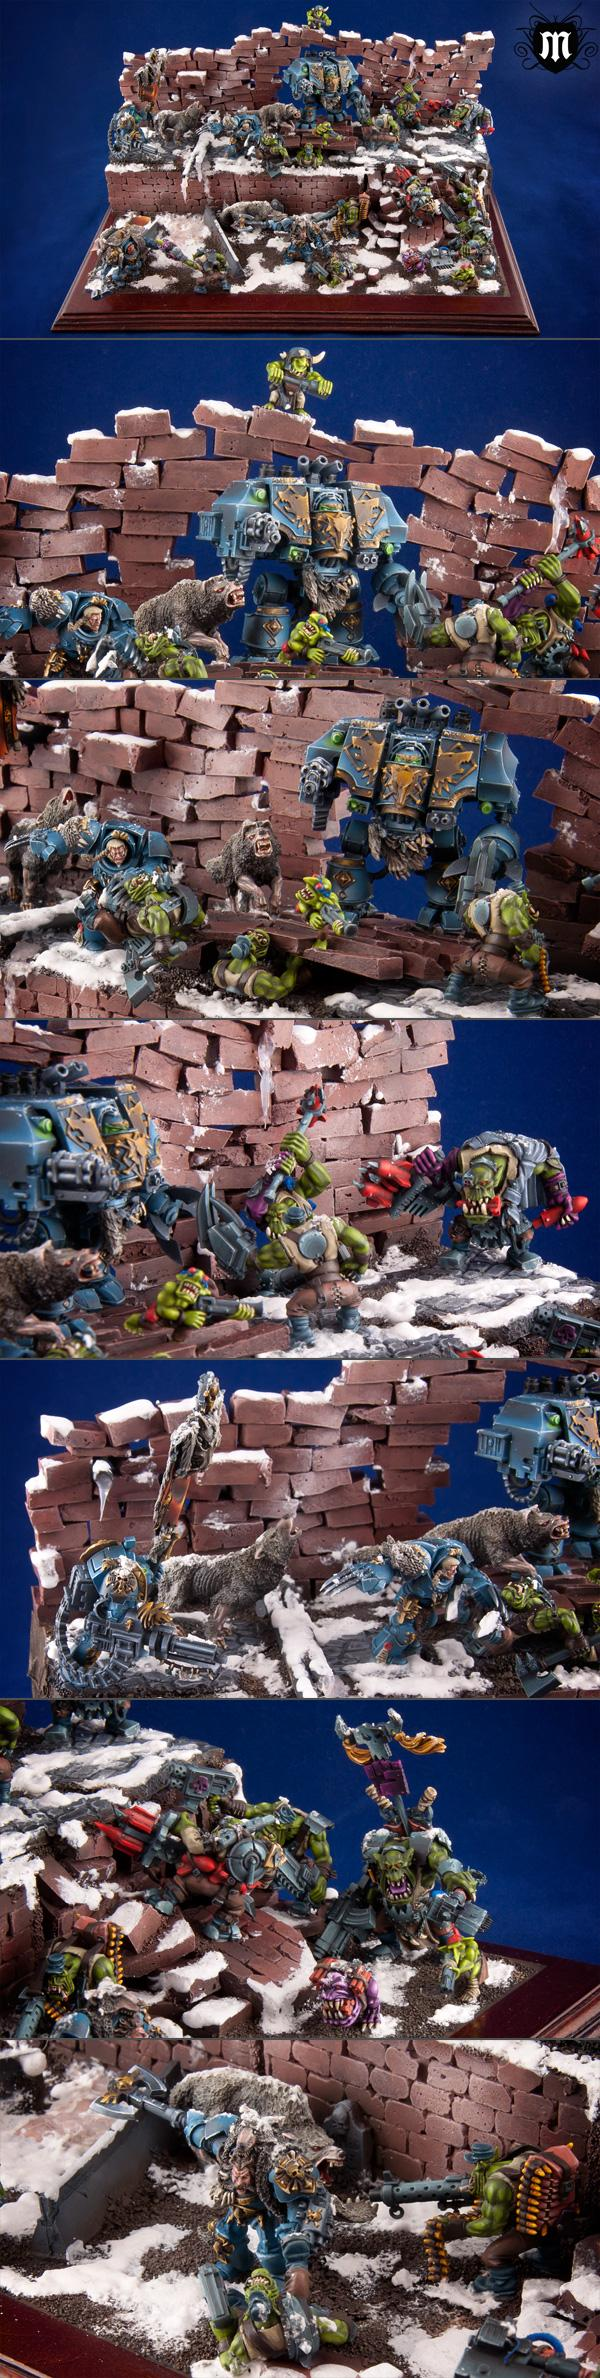 Assault Cannon, Diorama, Dreadnought, Gretchin, Grots, Orks, Snow, Space Marines, Space Wolves, Warhammer 40,000